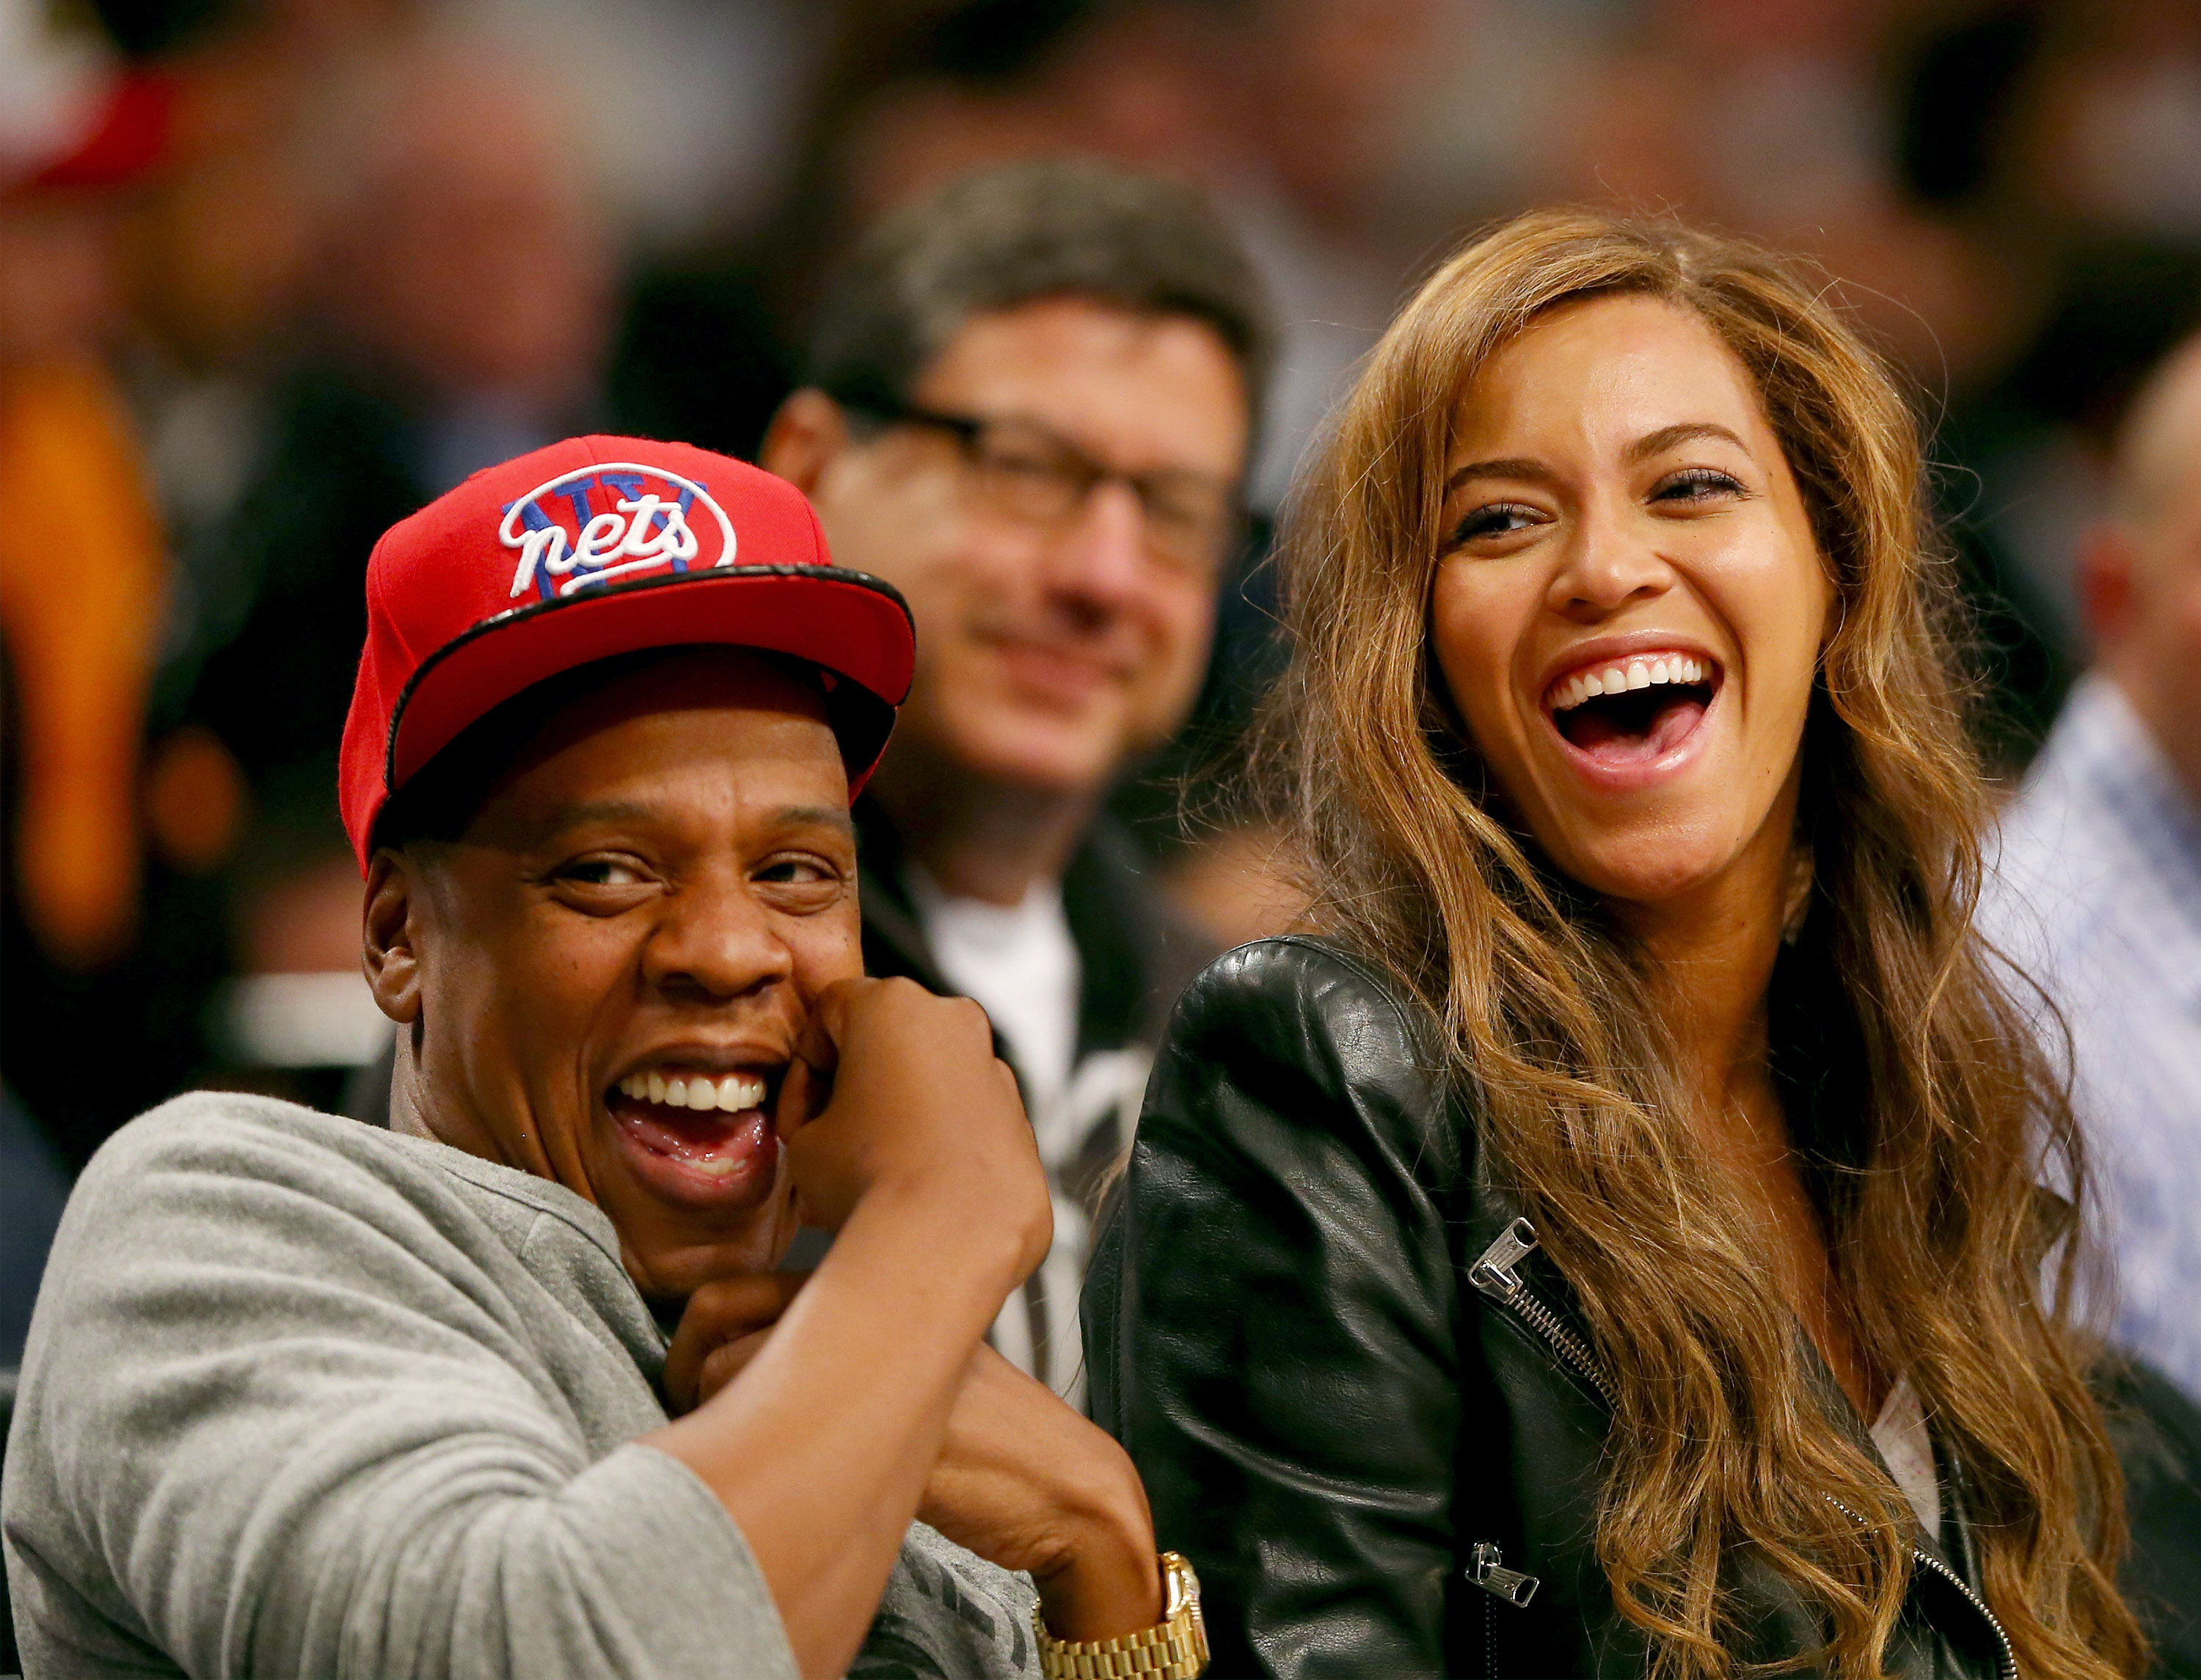 Are beyonce jay z illuminati wake up people the signs are all elsagetty images sportgetty images biocorpaavc Choice Image